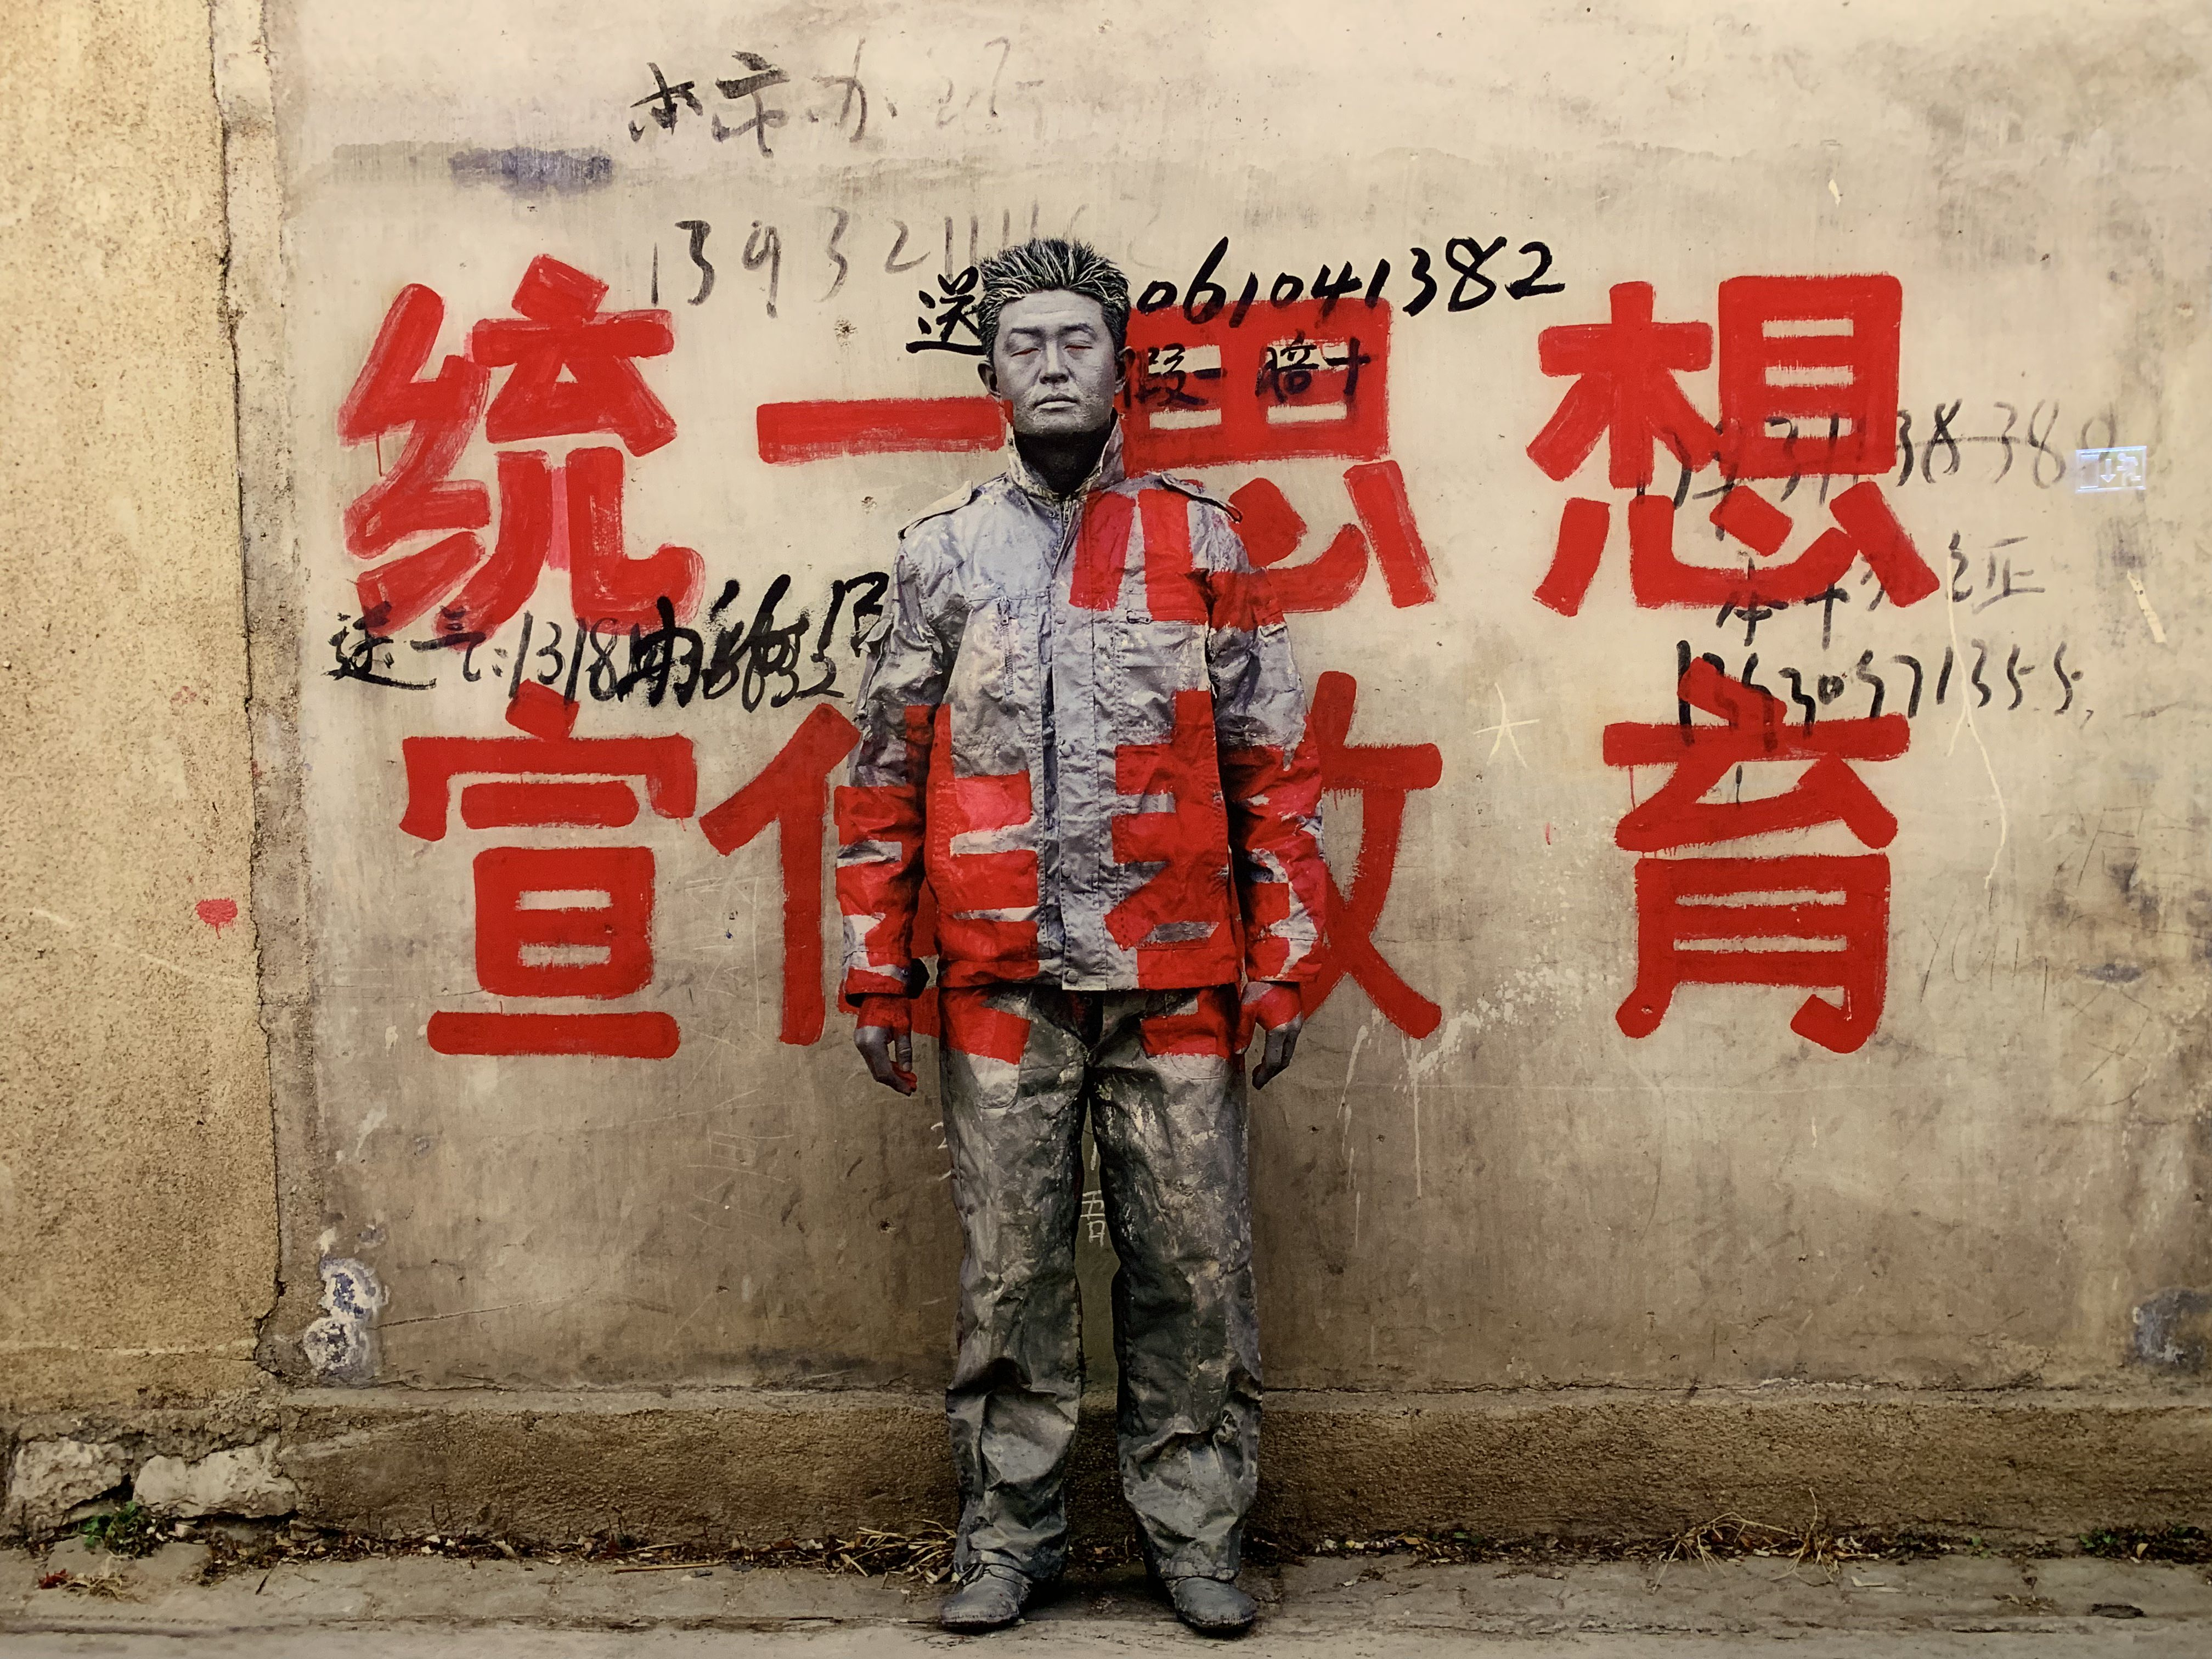 Liu Bolin painted in a wall with graffiti